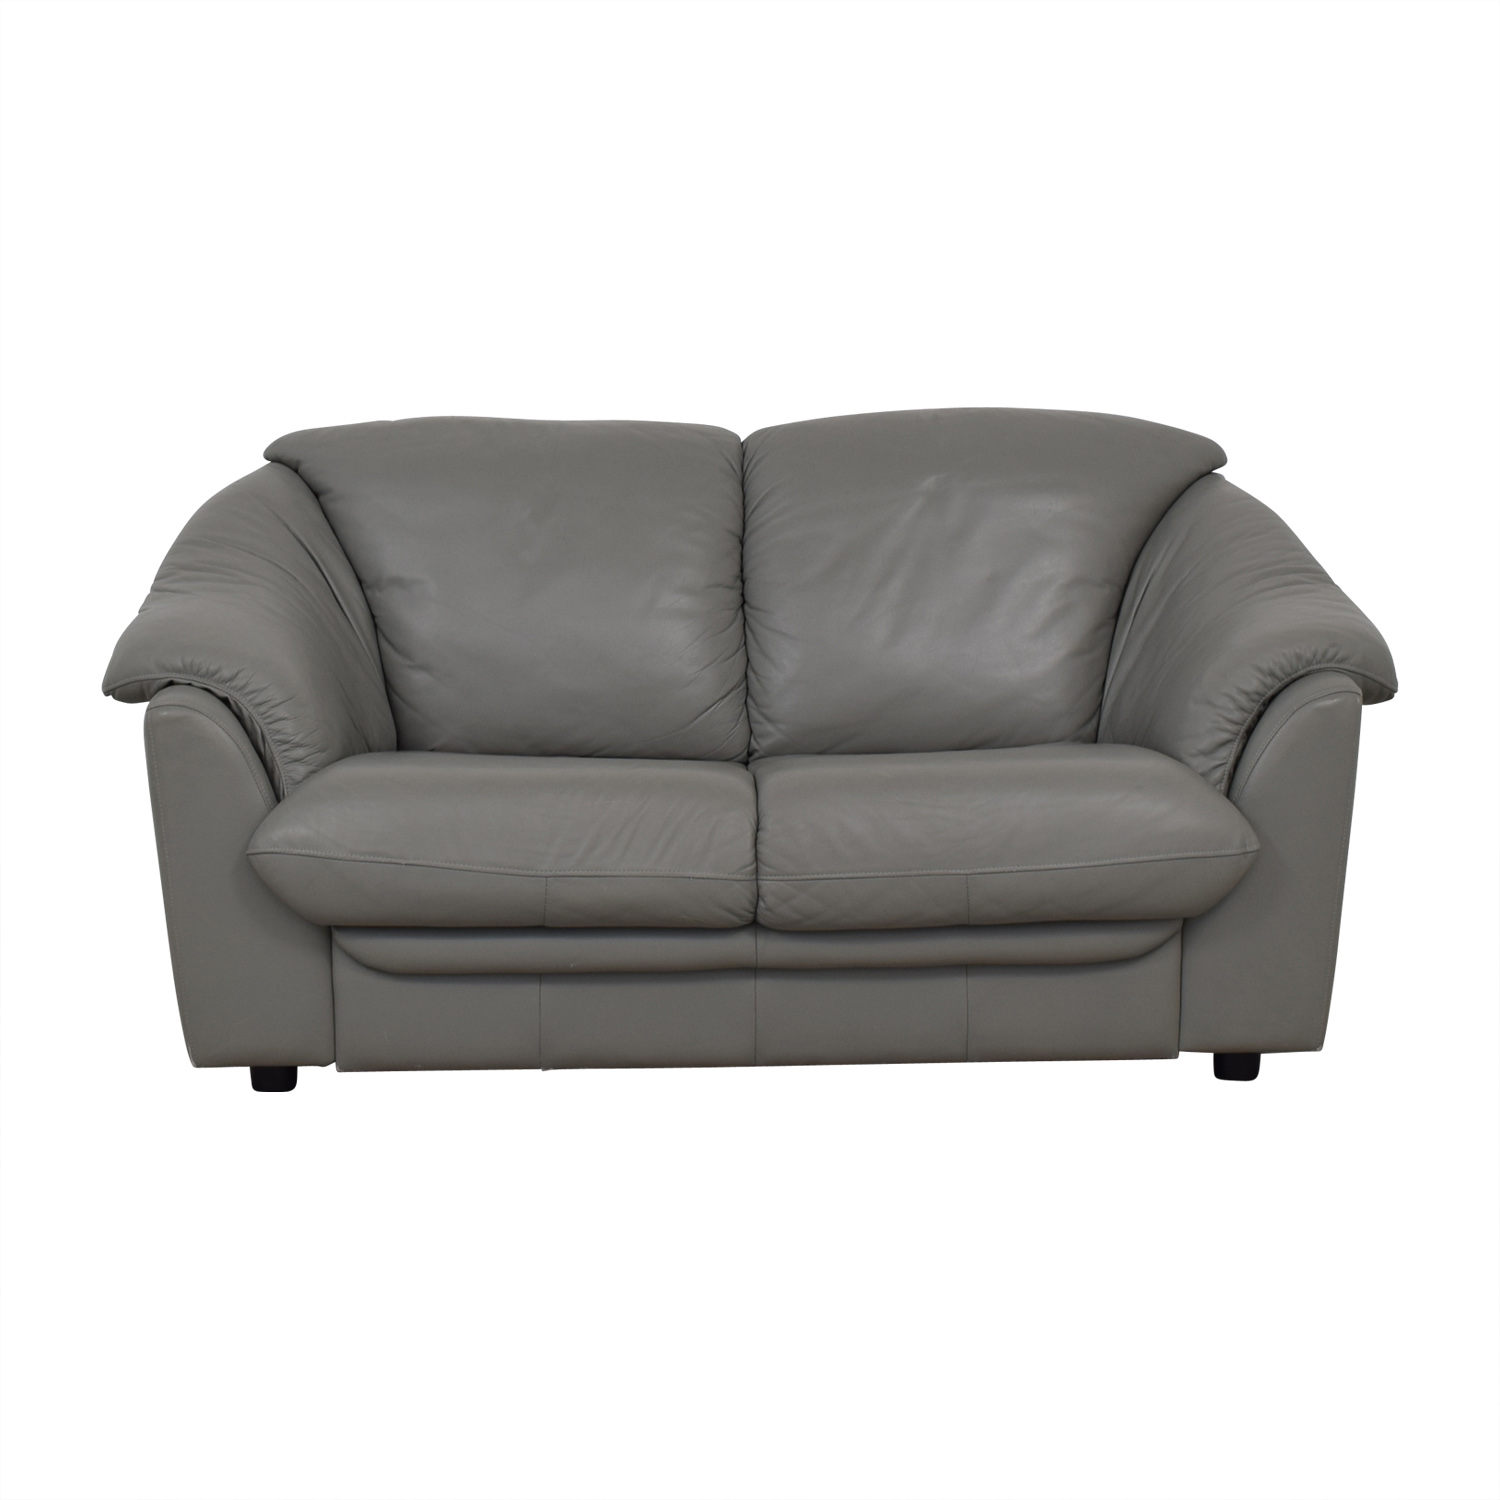 Italian Grey Two-Cushion Loveseat grey